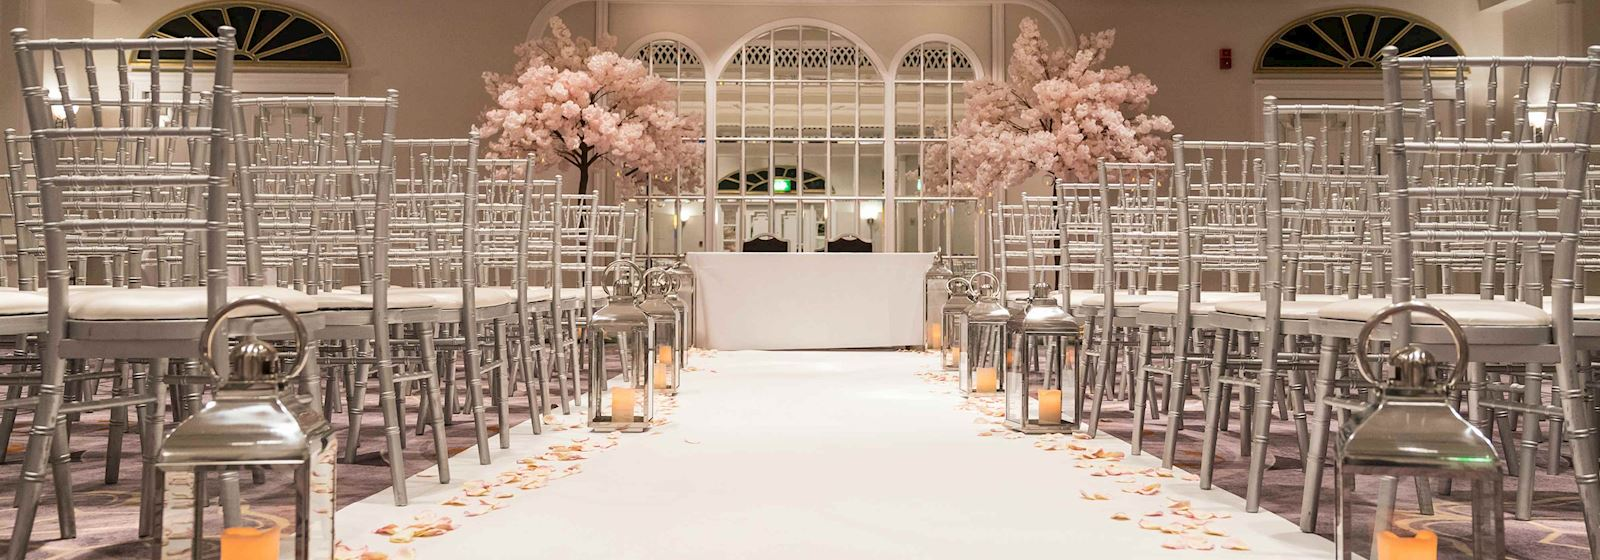 hotel wedding venue in london